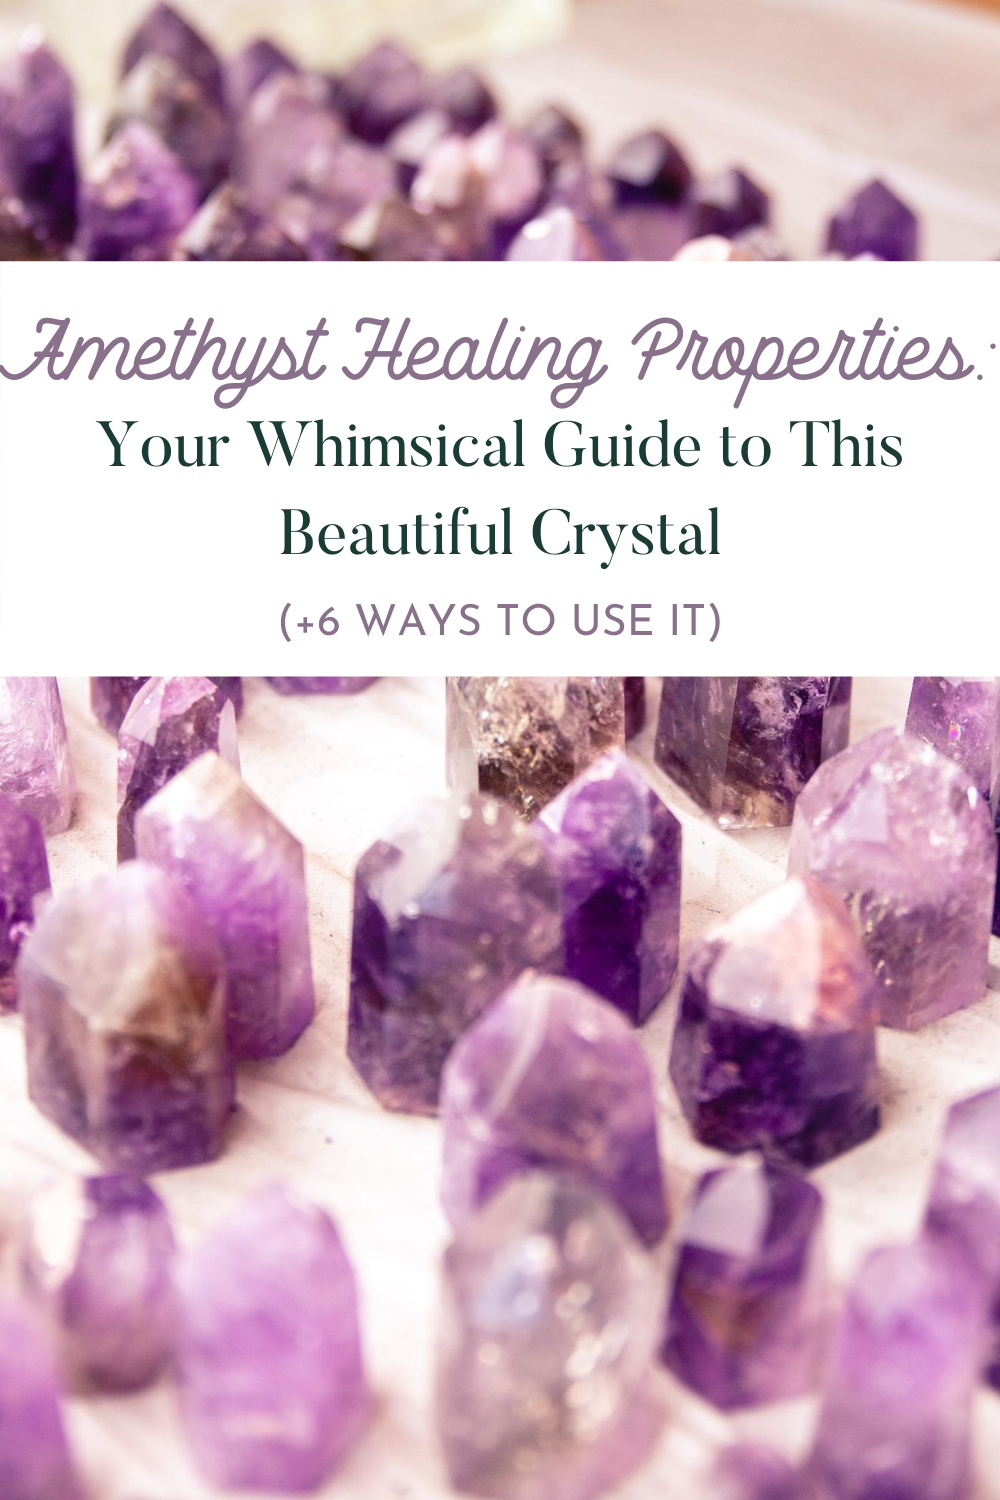 Amethyst Healing Properties: Your Whimsical Guide to This Beautiful Crystal (+6 Ways to Use It)